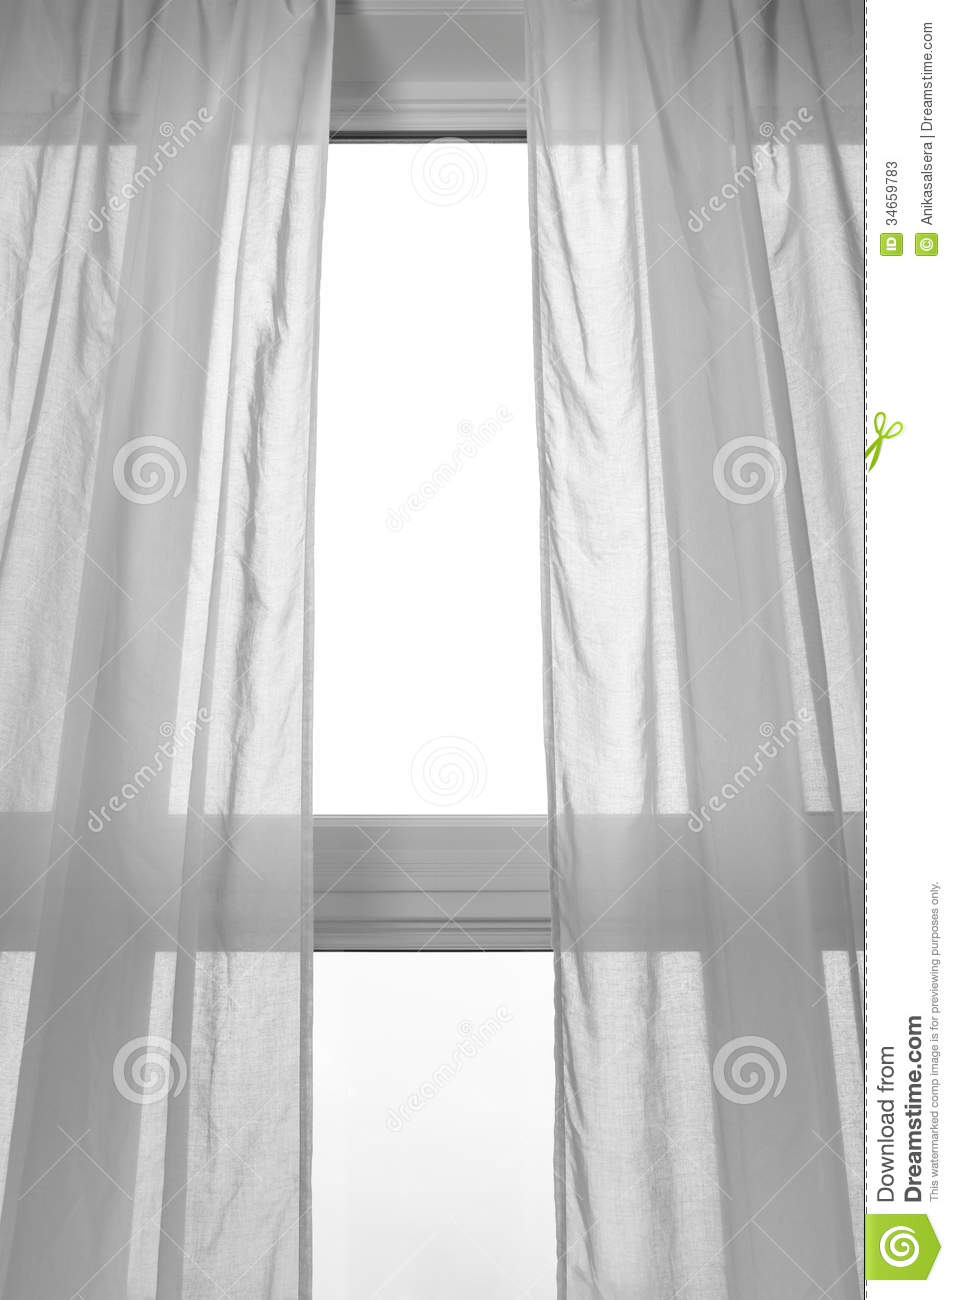 Light Coming Through The Window Stock Image Image Of Contemporary Window 34659783